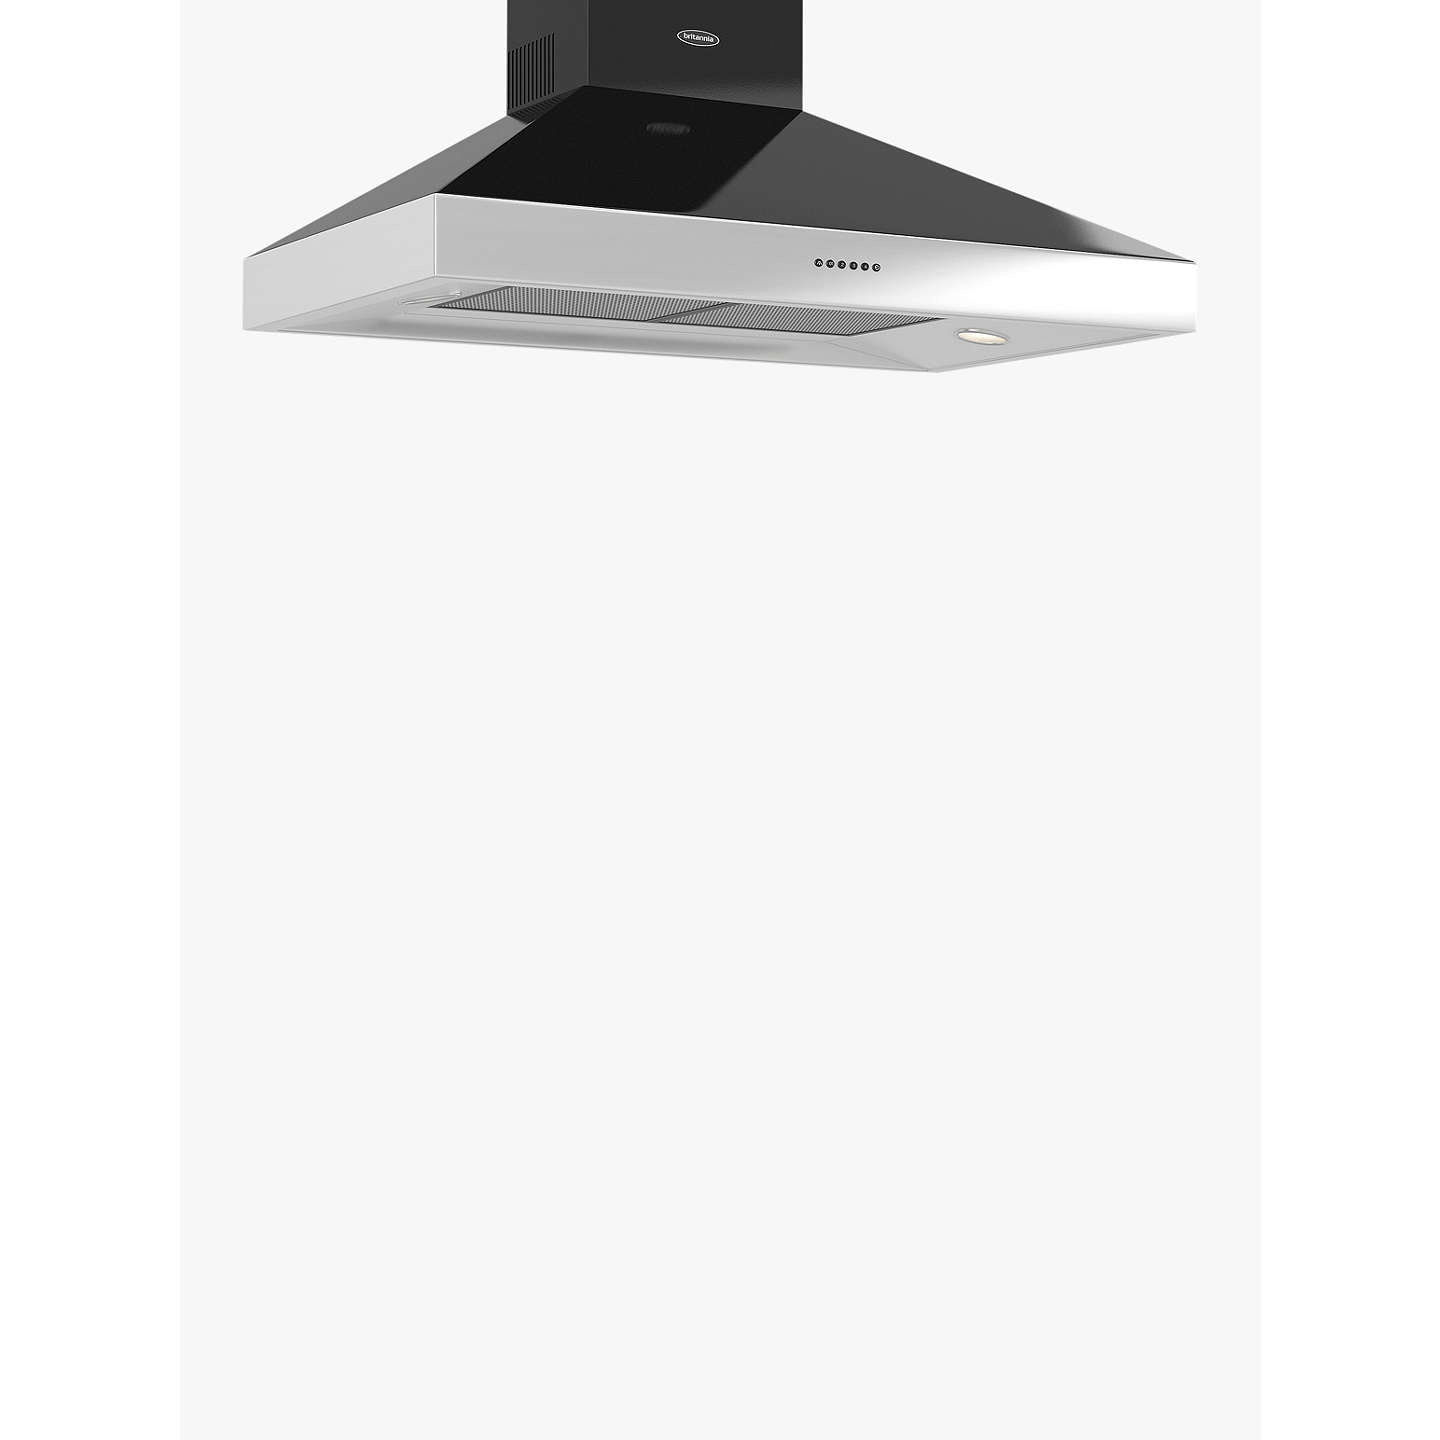 BuyBritannia HOOD-BTH100-GB Latour 2tone Chimney Cooker Hood, Black Gloss Online at johnlewis.com